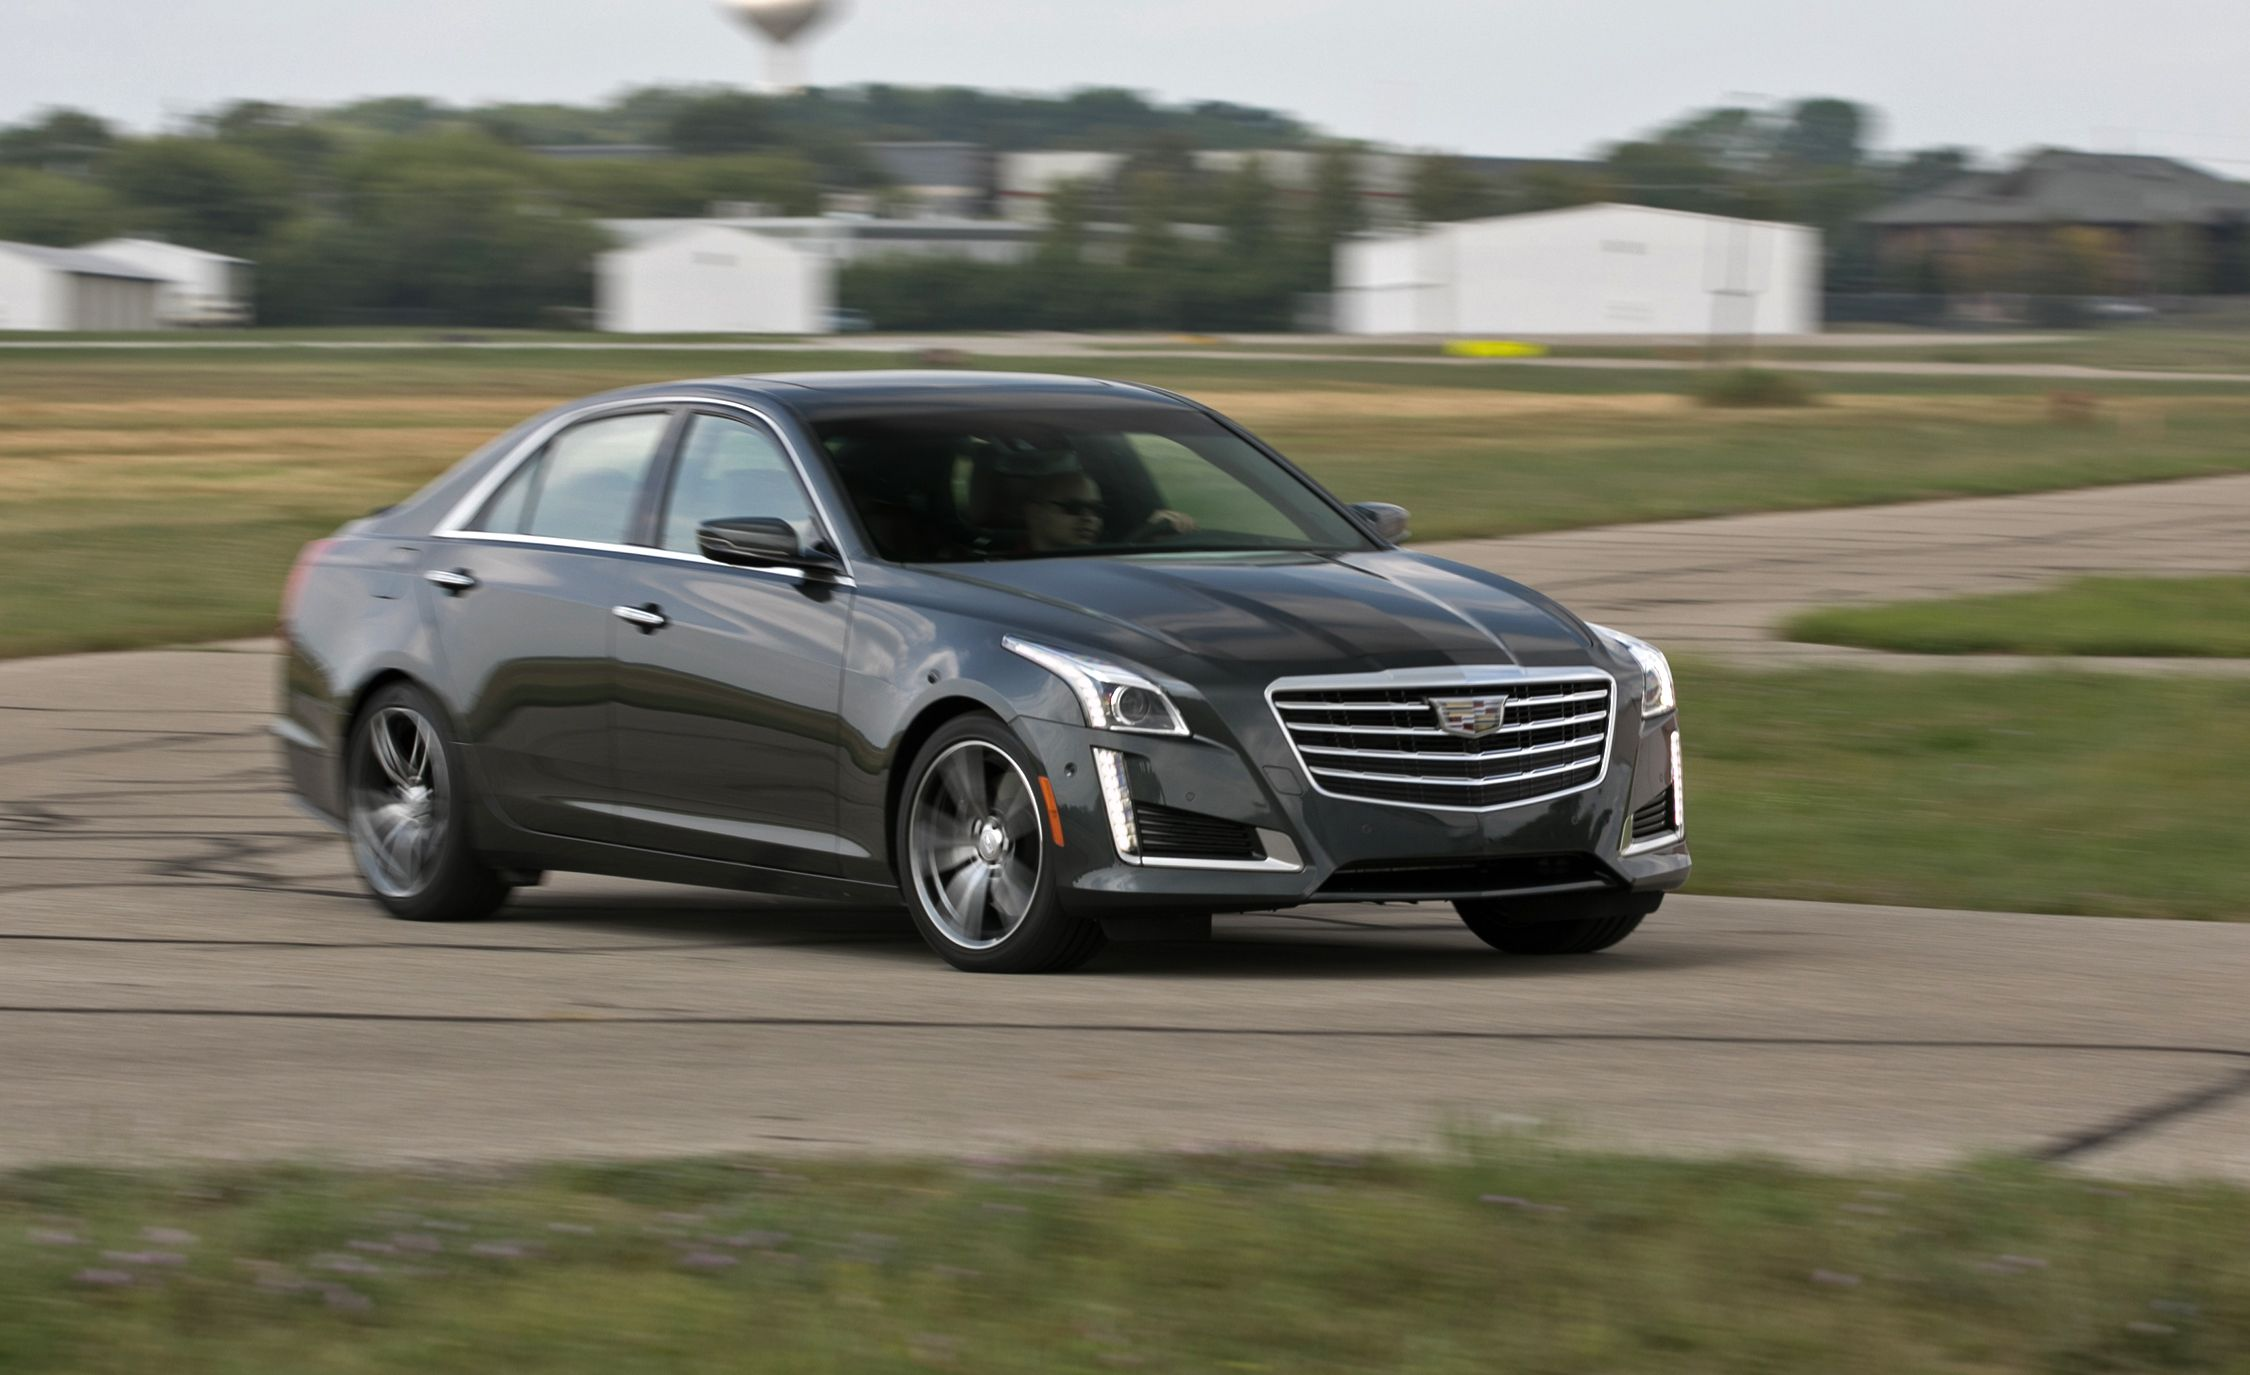 luxury car cadillac  2017 Cadillac CTS | In-Depth Model Review | Car and Driver